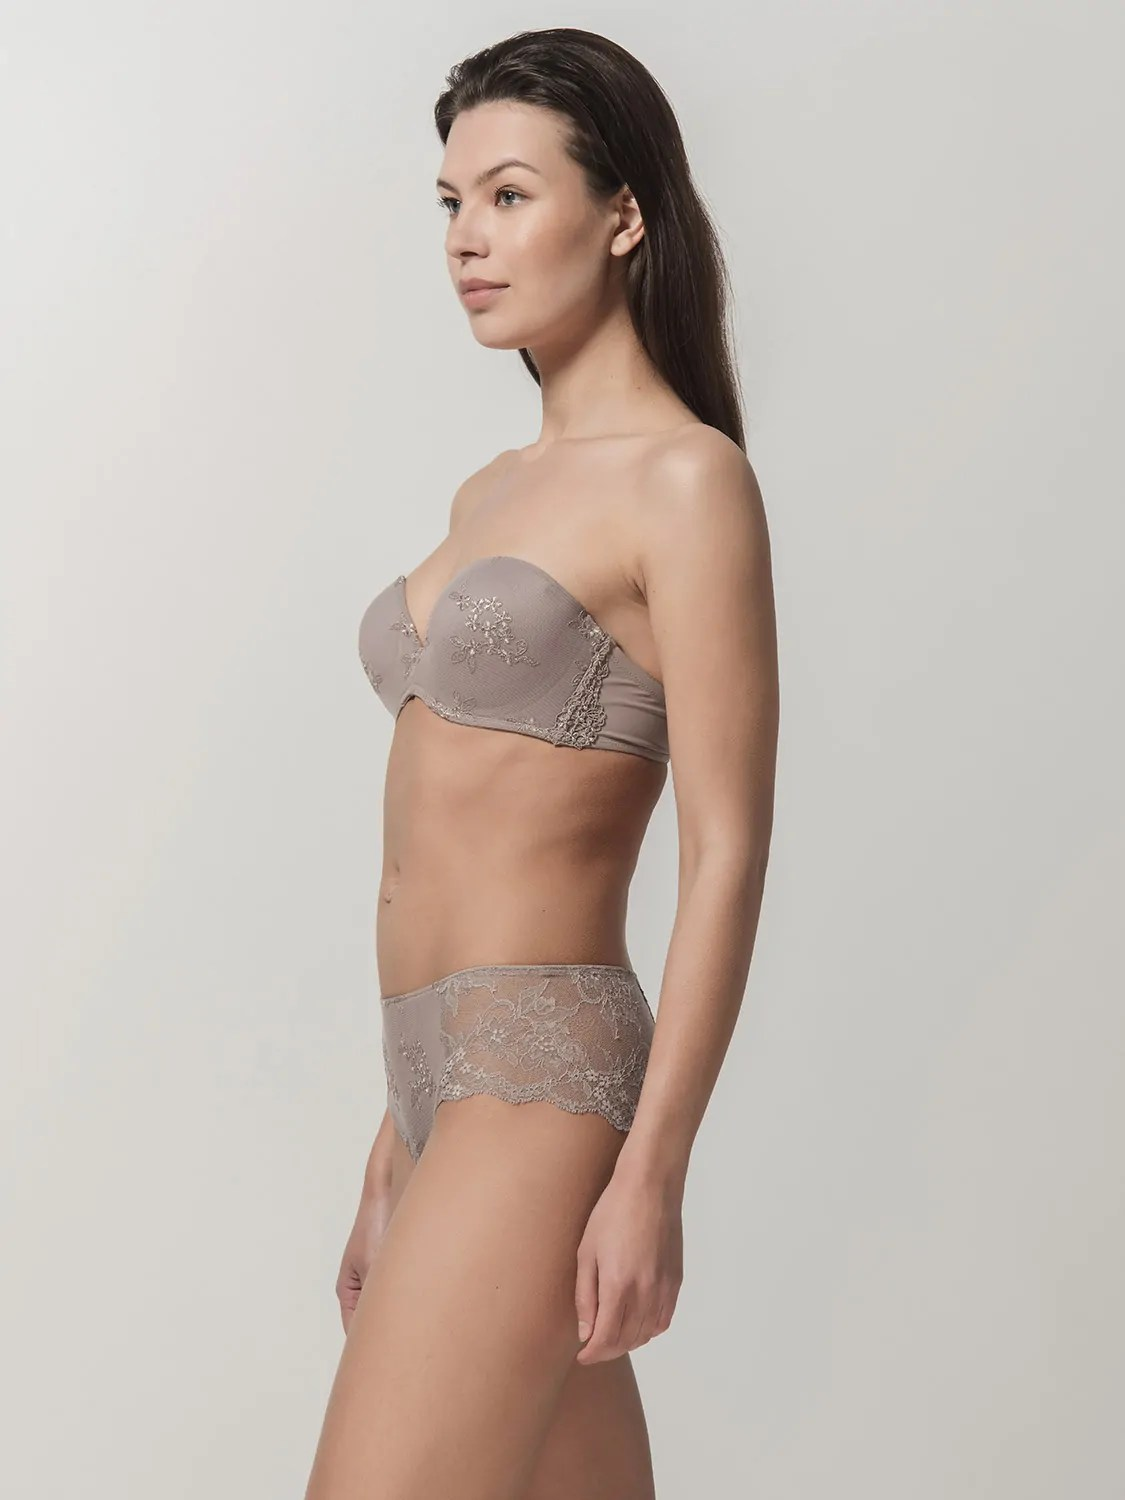 Honeymoon 14032 strapless & 24032 hipster vison side